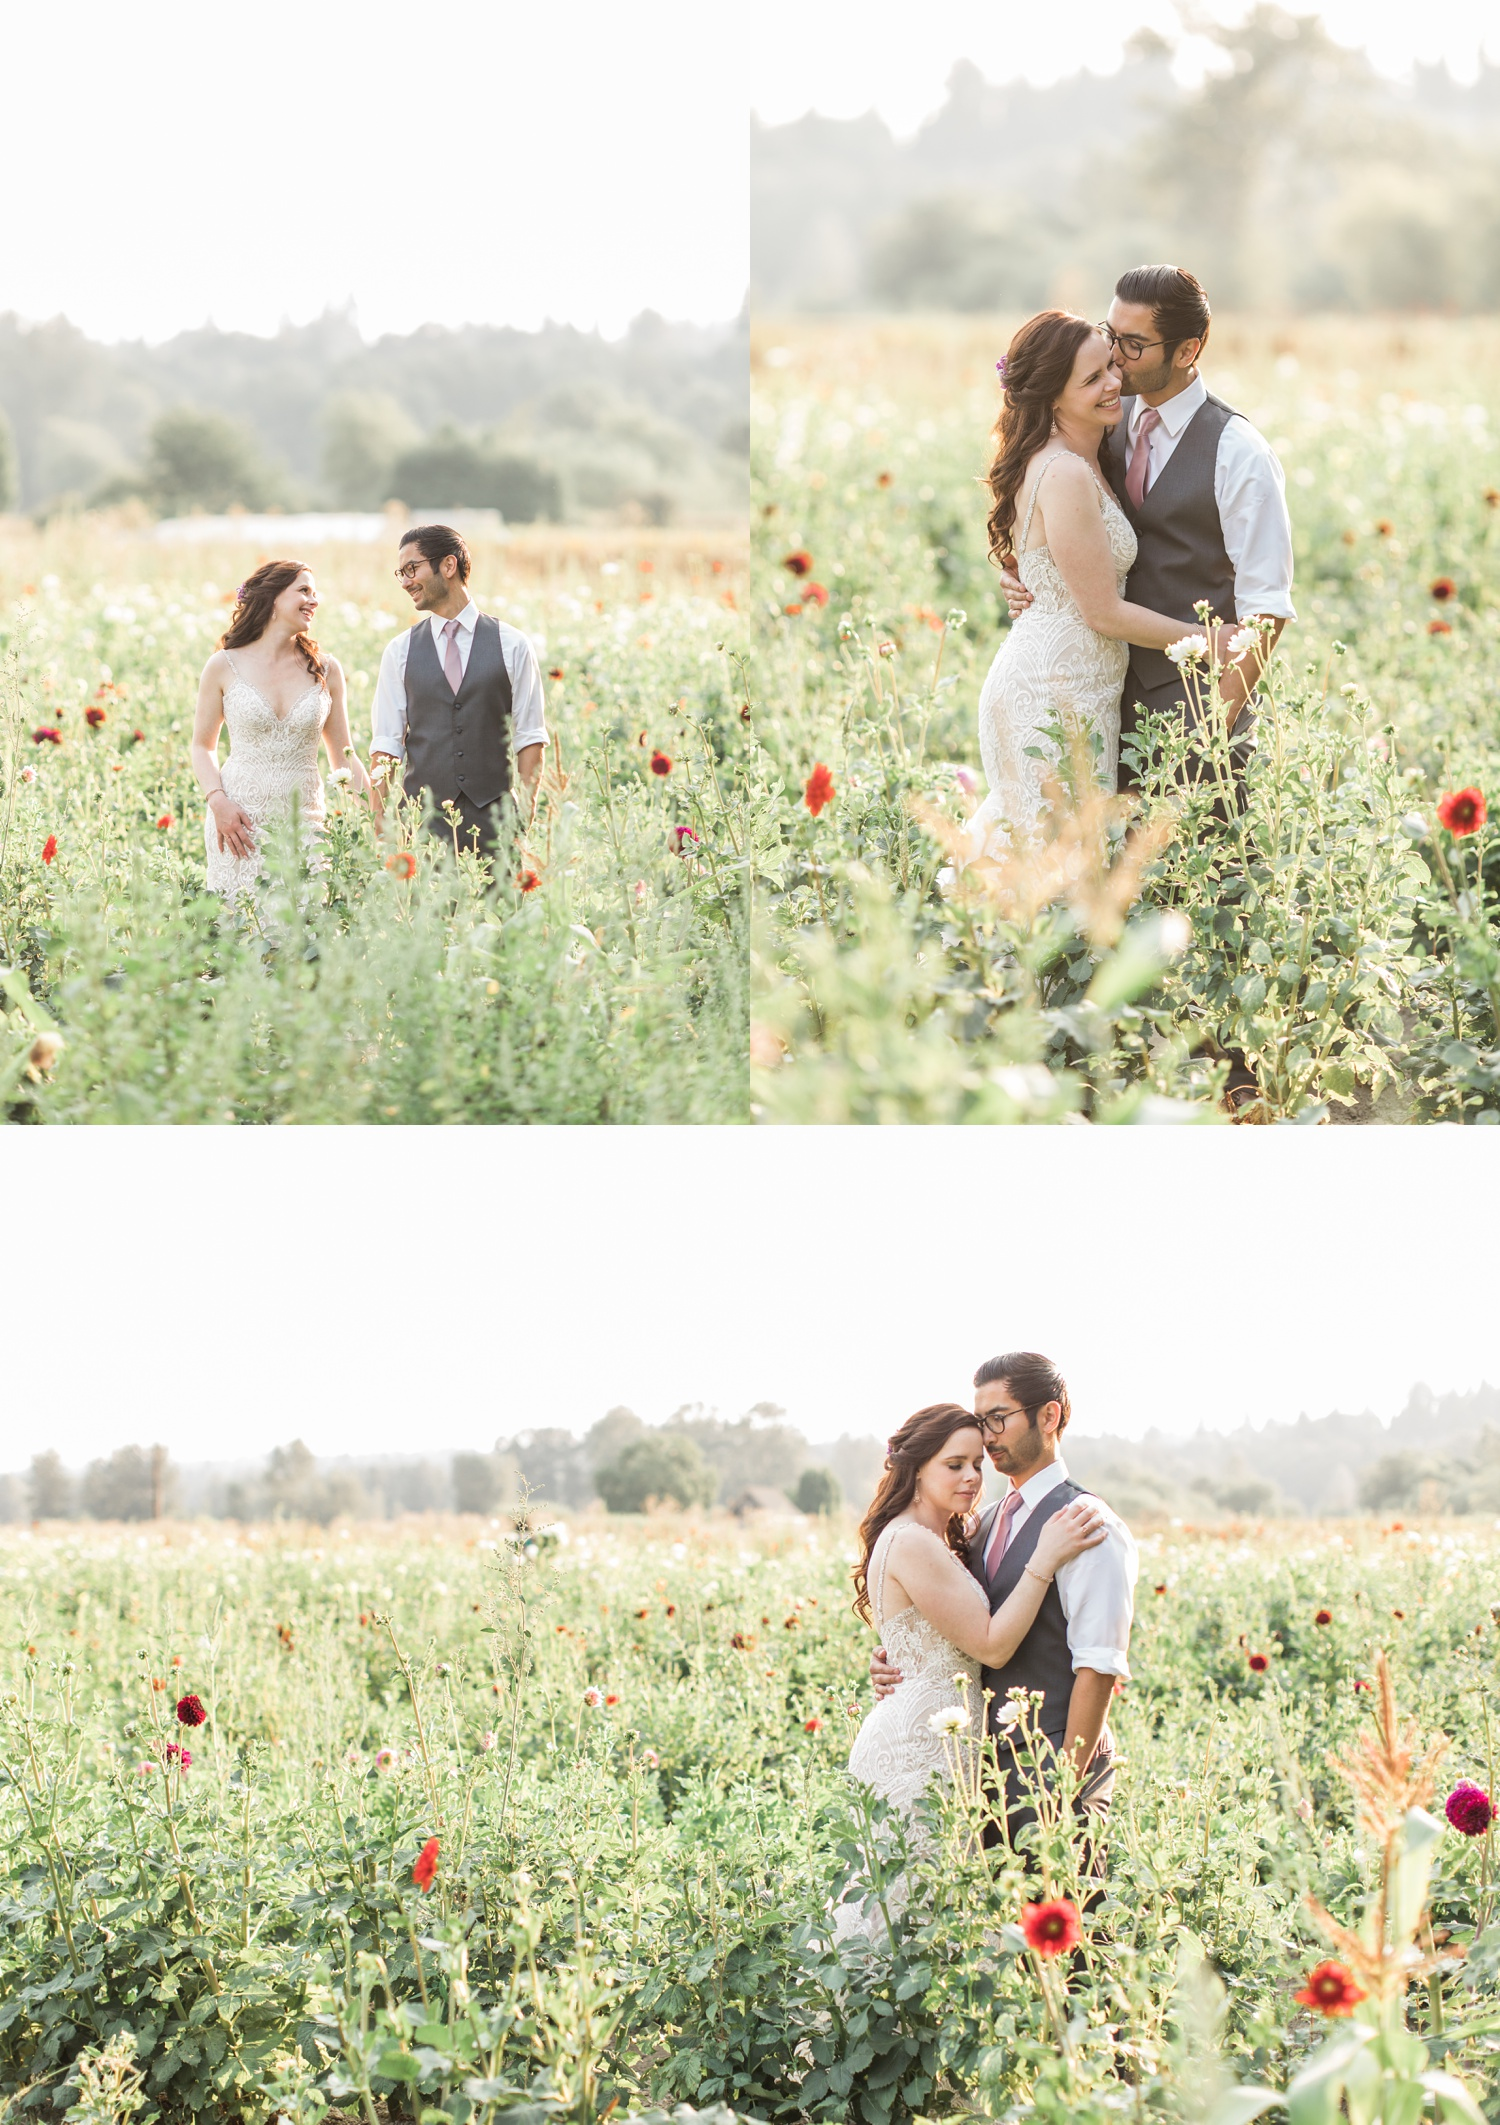 A bride and groom embrace in a field of flowers before their wedding at Woodland Meadow Farms in Snohomish, a wedding venue near Seattle, WA. | Joanna Monger Photography | Seattle & Snohomish Photographer